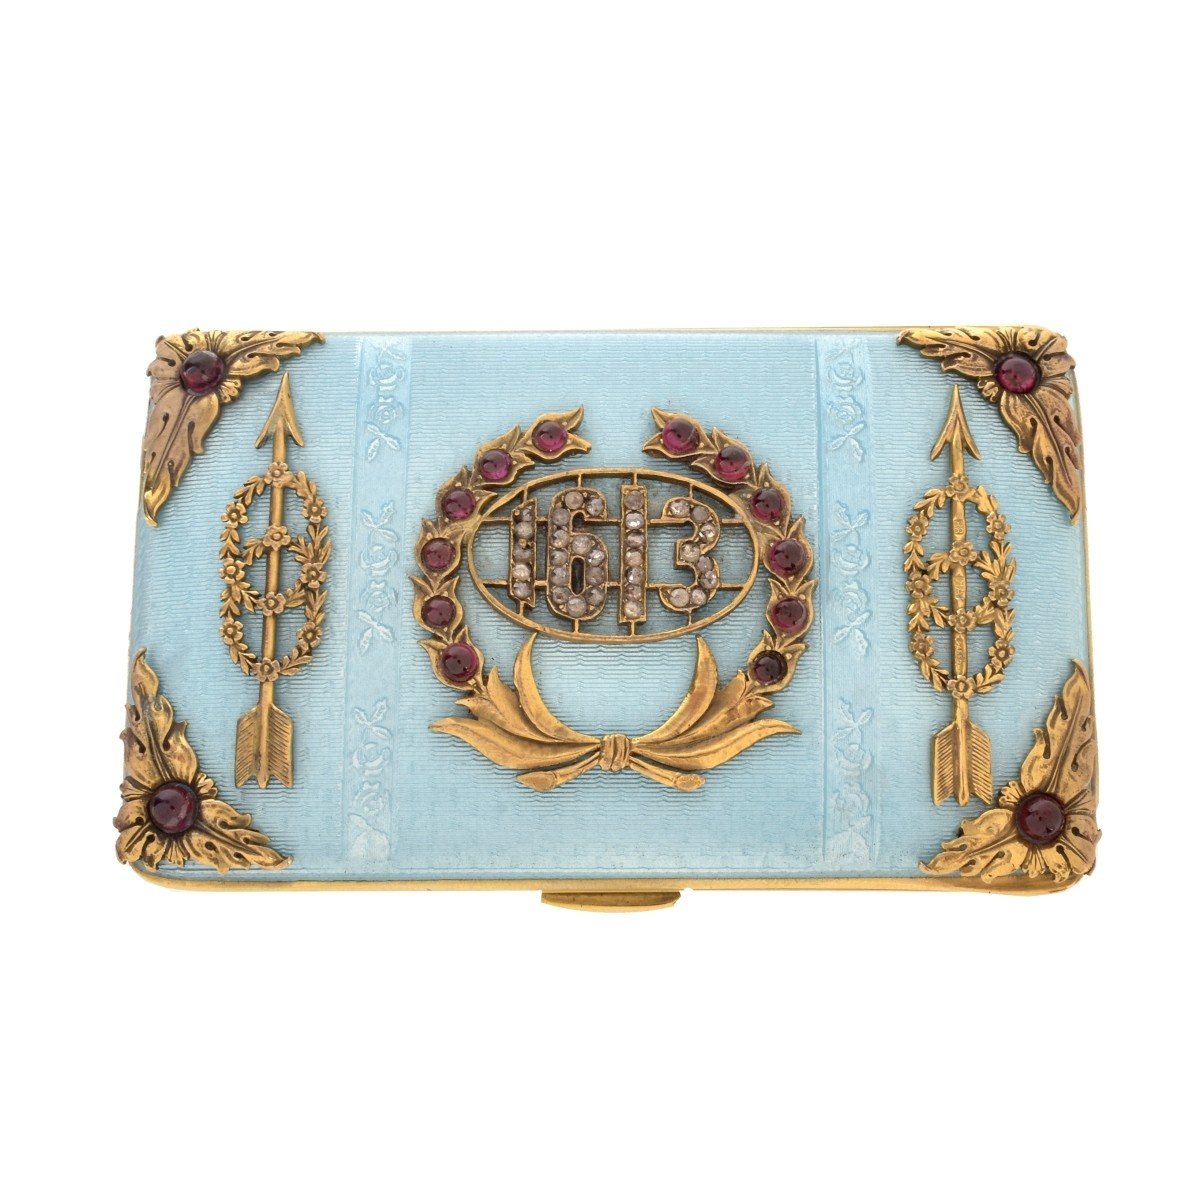 Russian Enamel, Silver and Gemstone Case